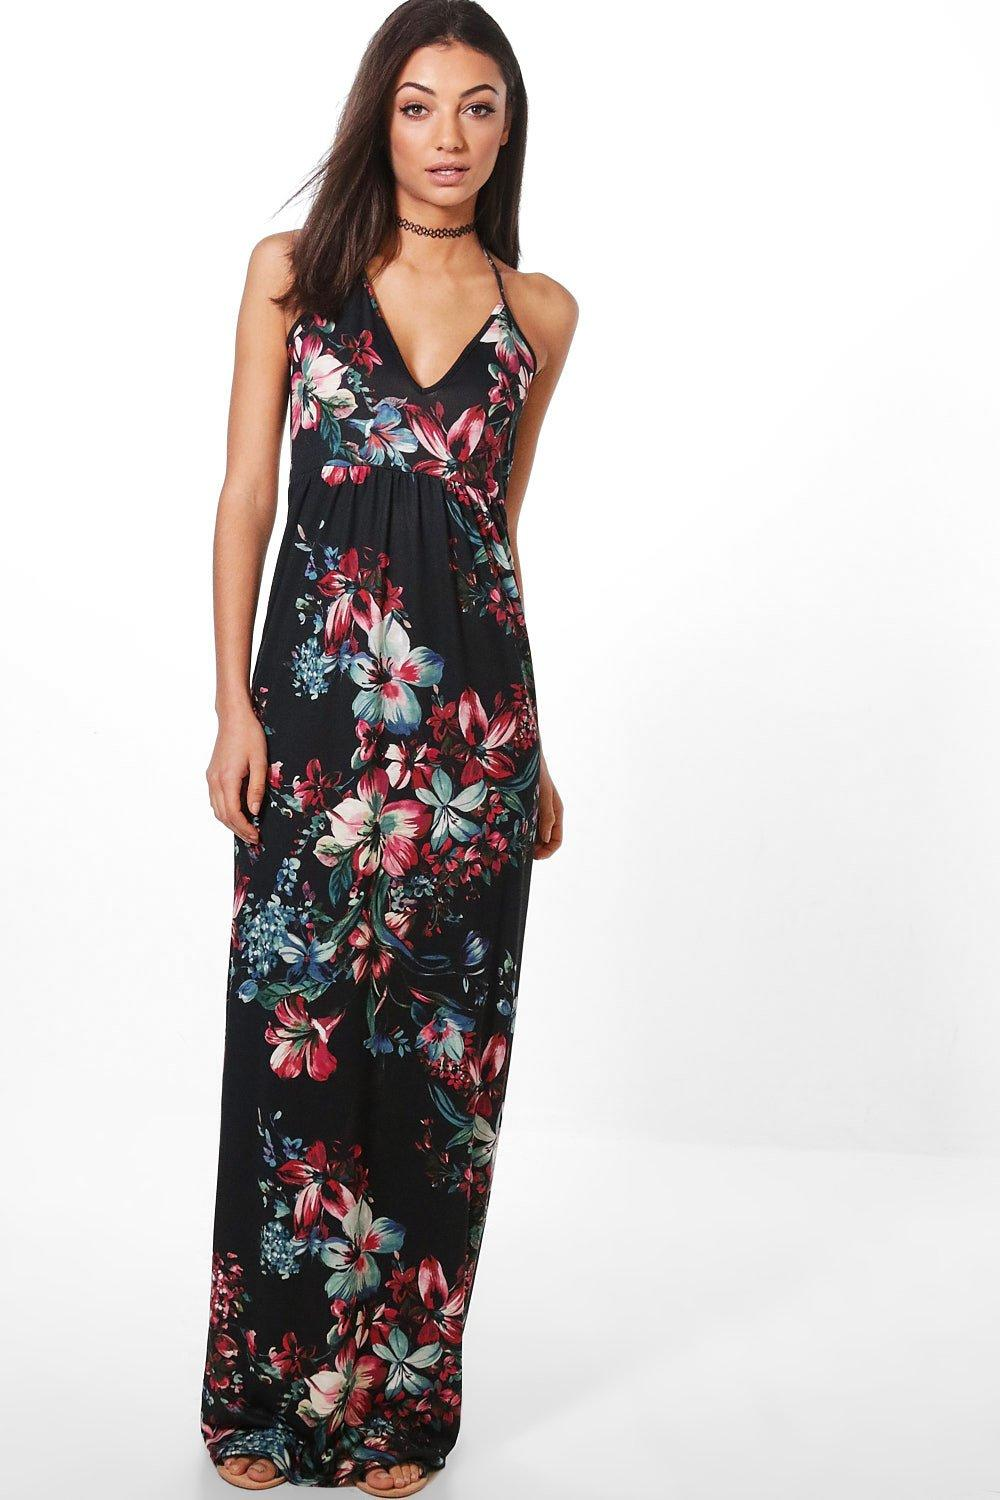 d7248a42d4 Tall Dark Floral Maxi Dress. Hover to zoom